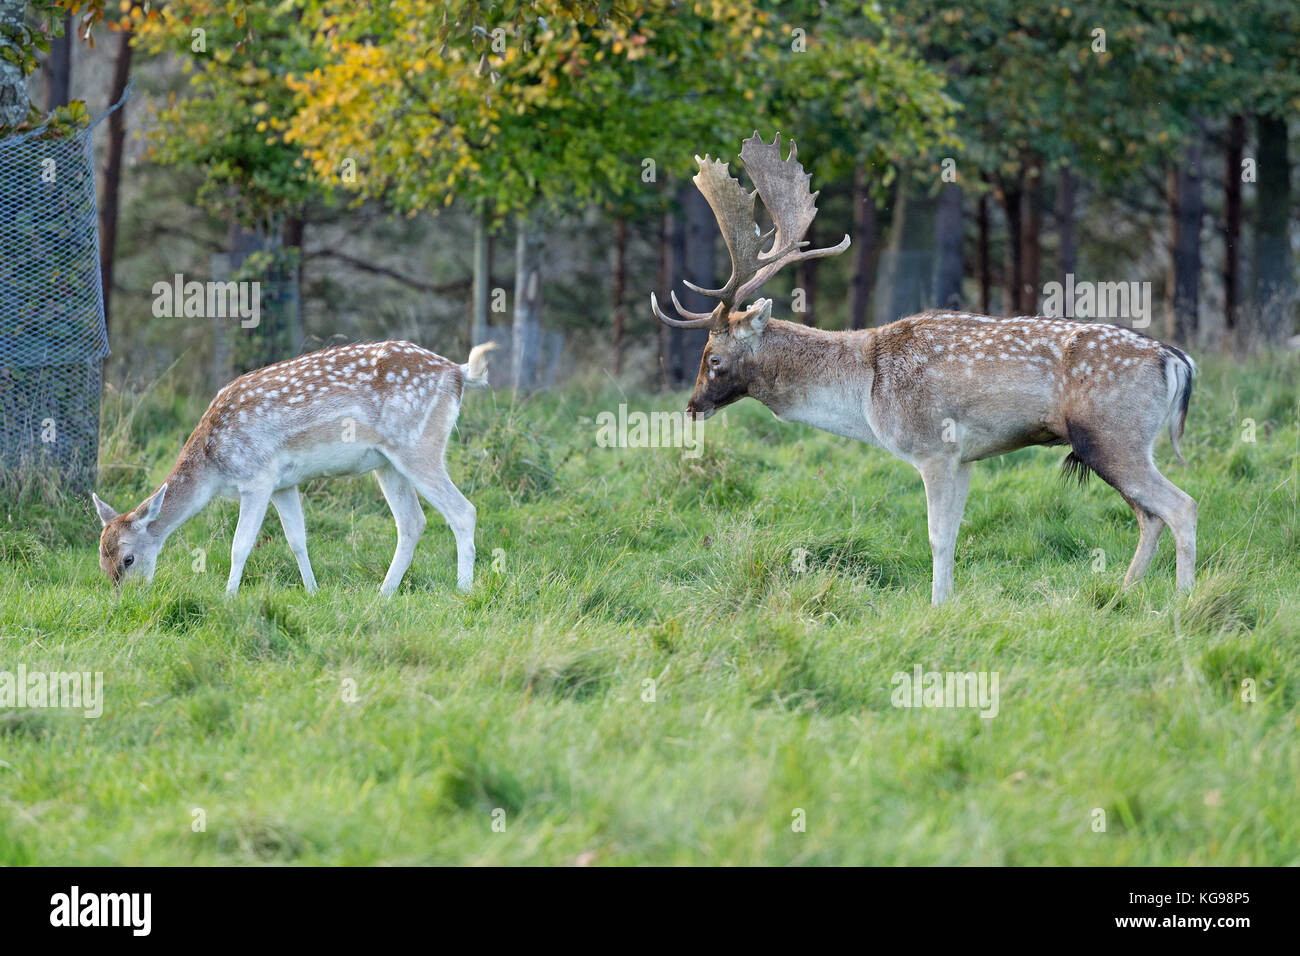 fallow deer (Dama dama) at Phoenix Park, Dublin, Ireland - Stock Image